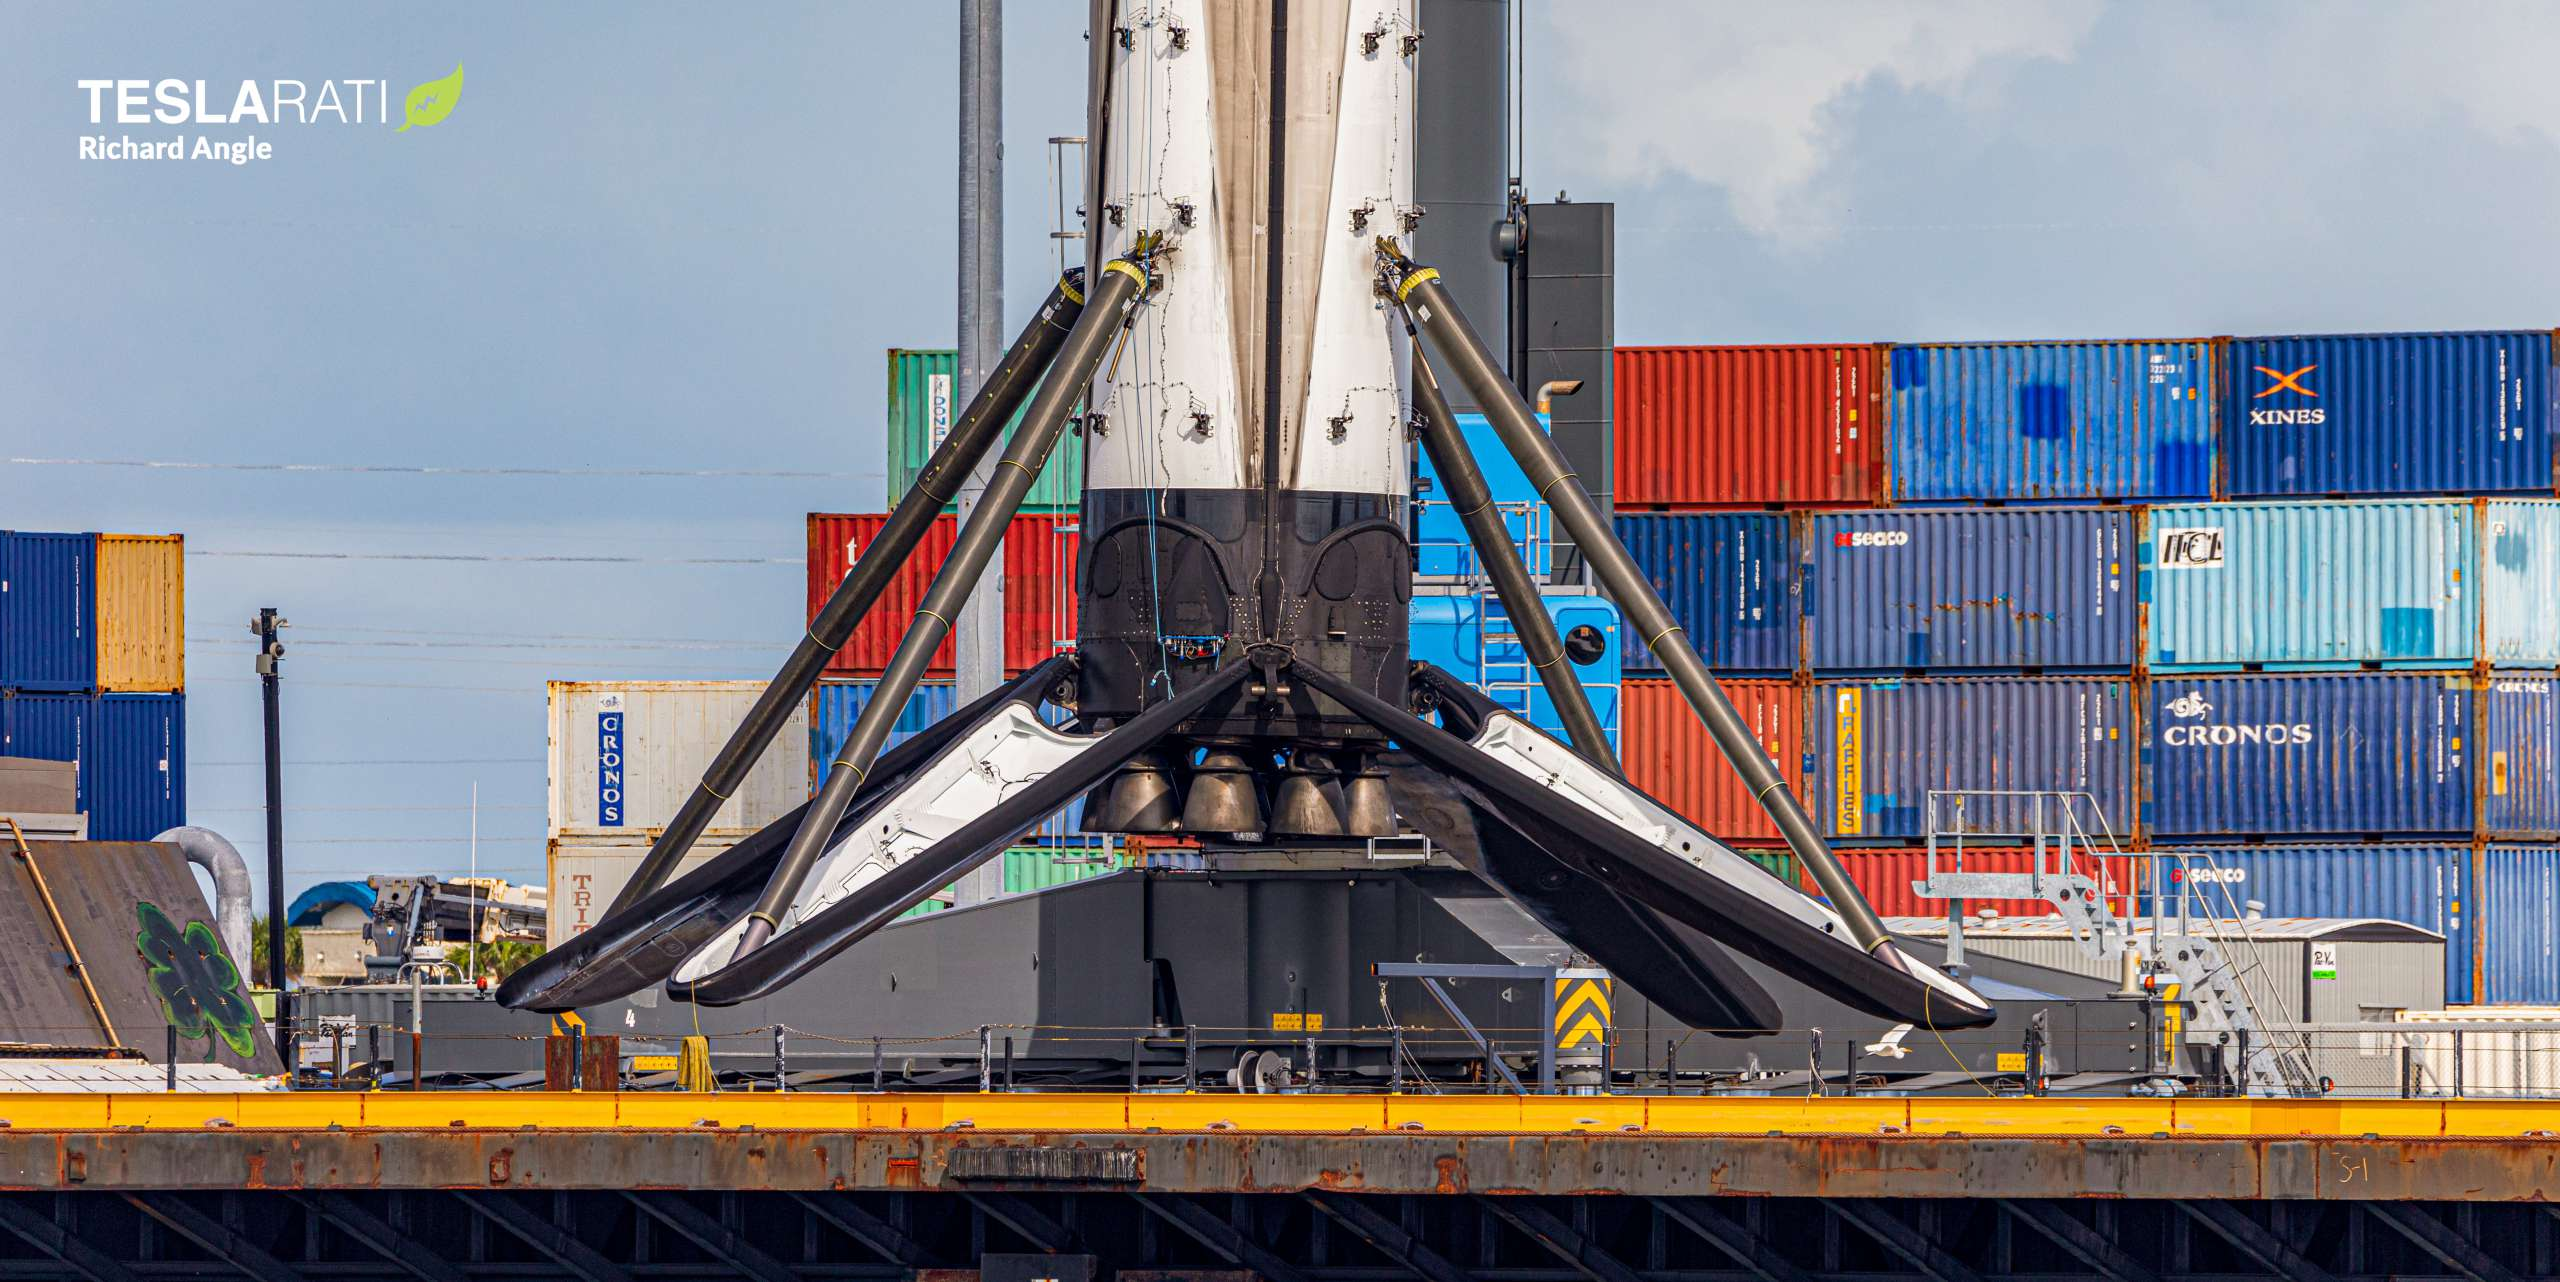 Crew-1 Falcon 9 B1061 JRTI return 112020 (Richard Angle) lift 2 crop (c)